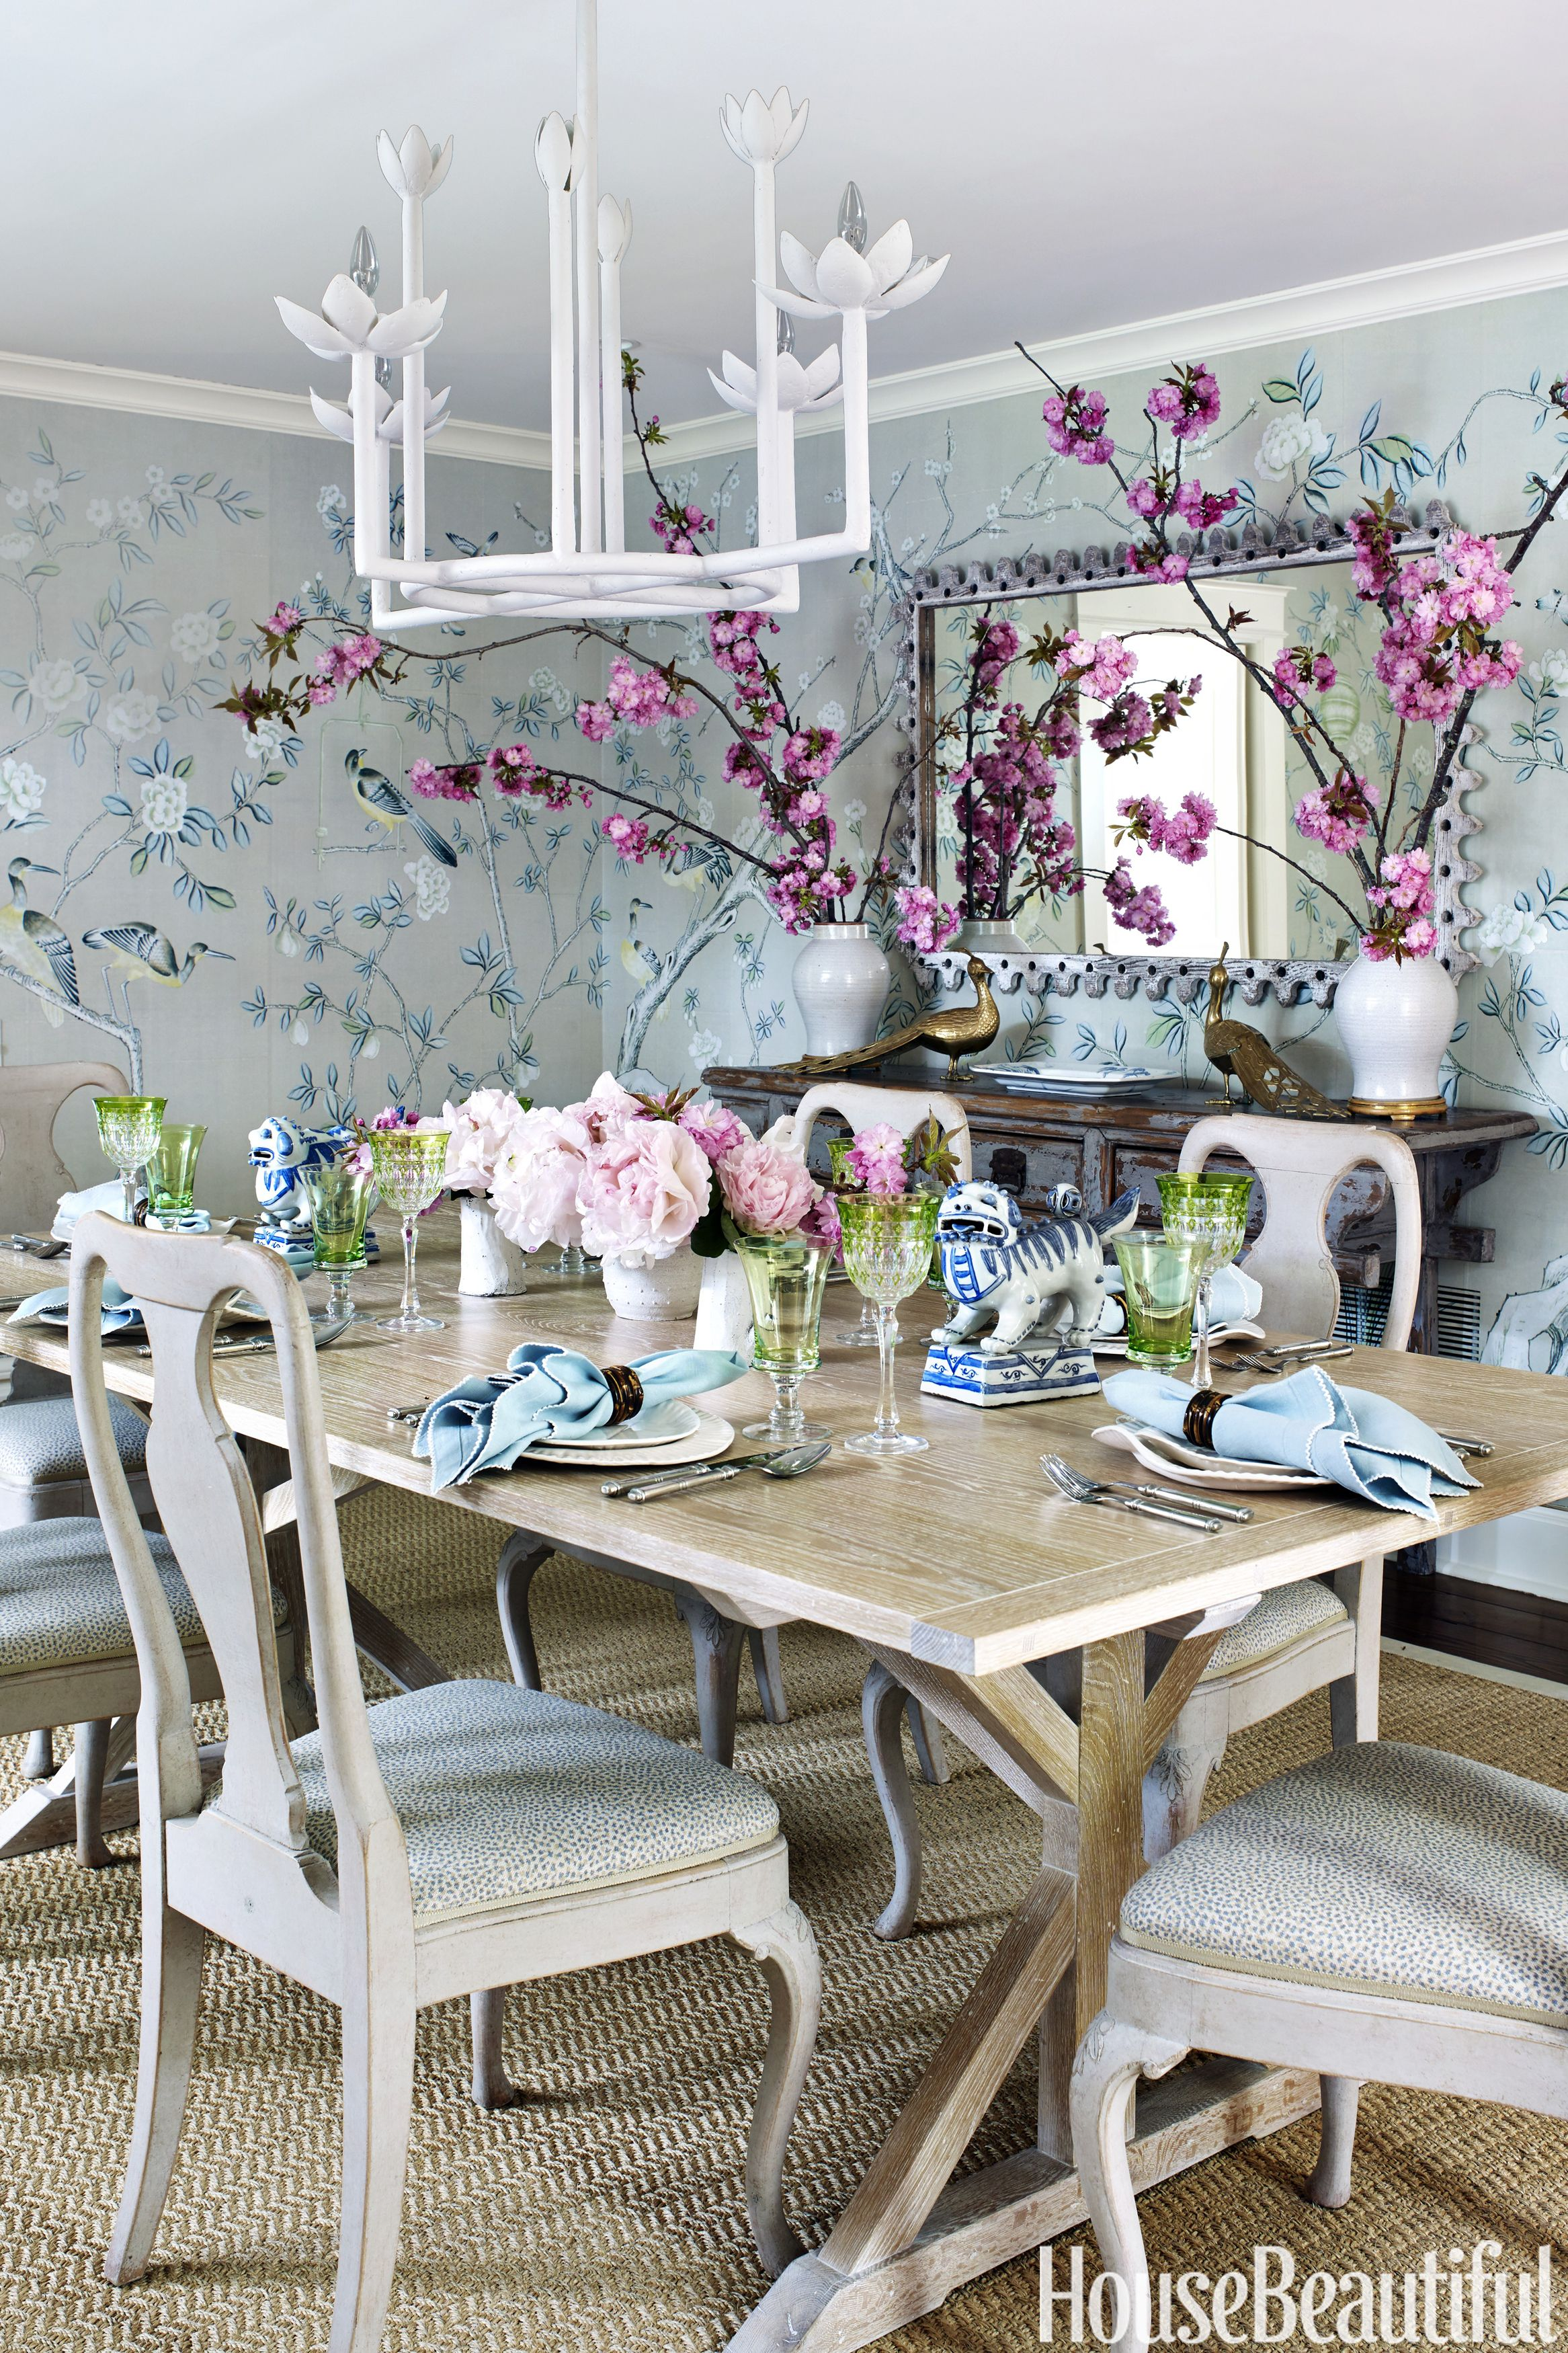 De Gournayu0027s Hand Painted Chinoiserie Tea Paper On The Walls Gives The Dining  Room Its